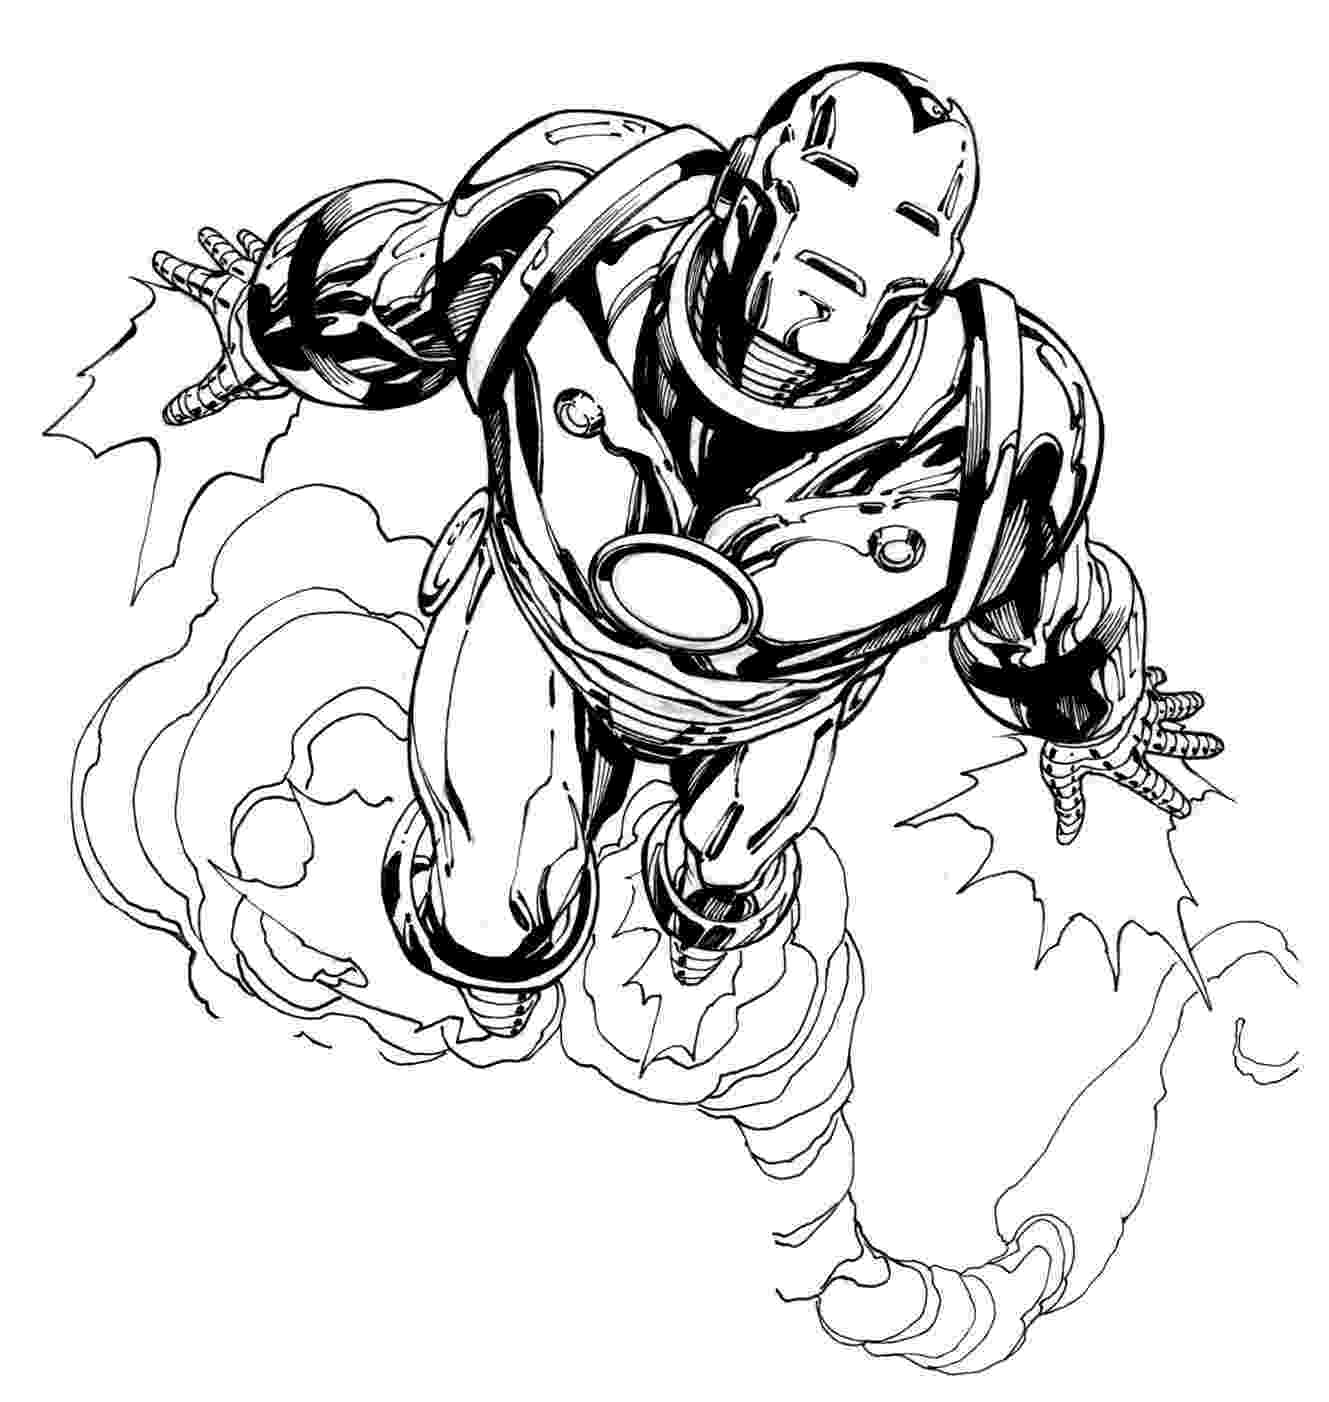 ironman colouring free printable iron man coloring pages for kids cool2bkids colouring ironman 1 3